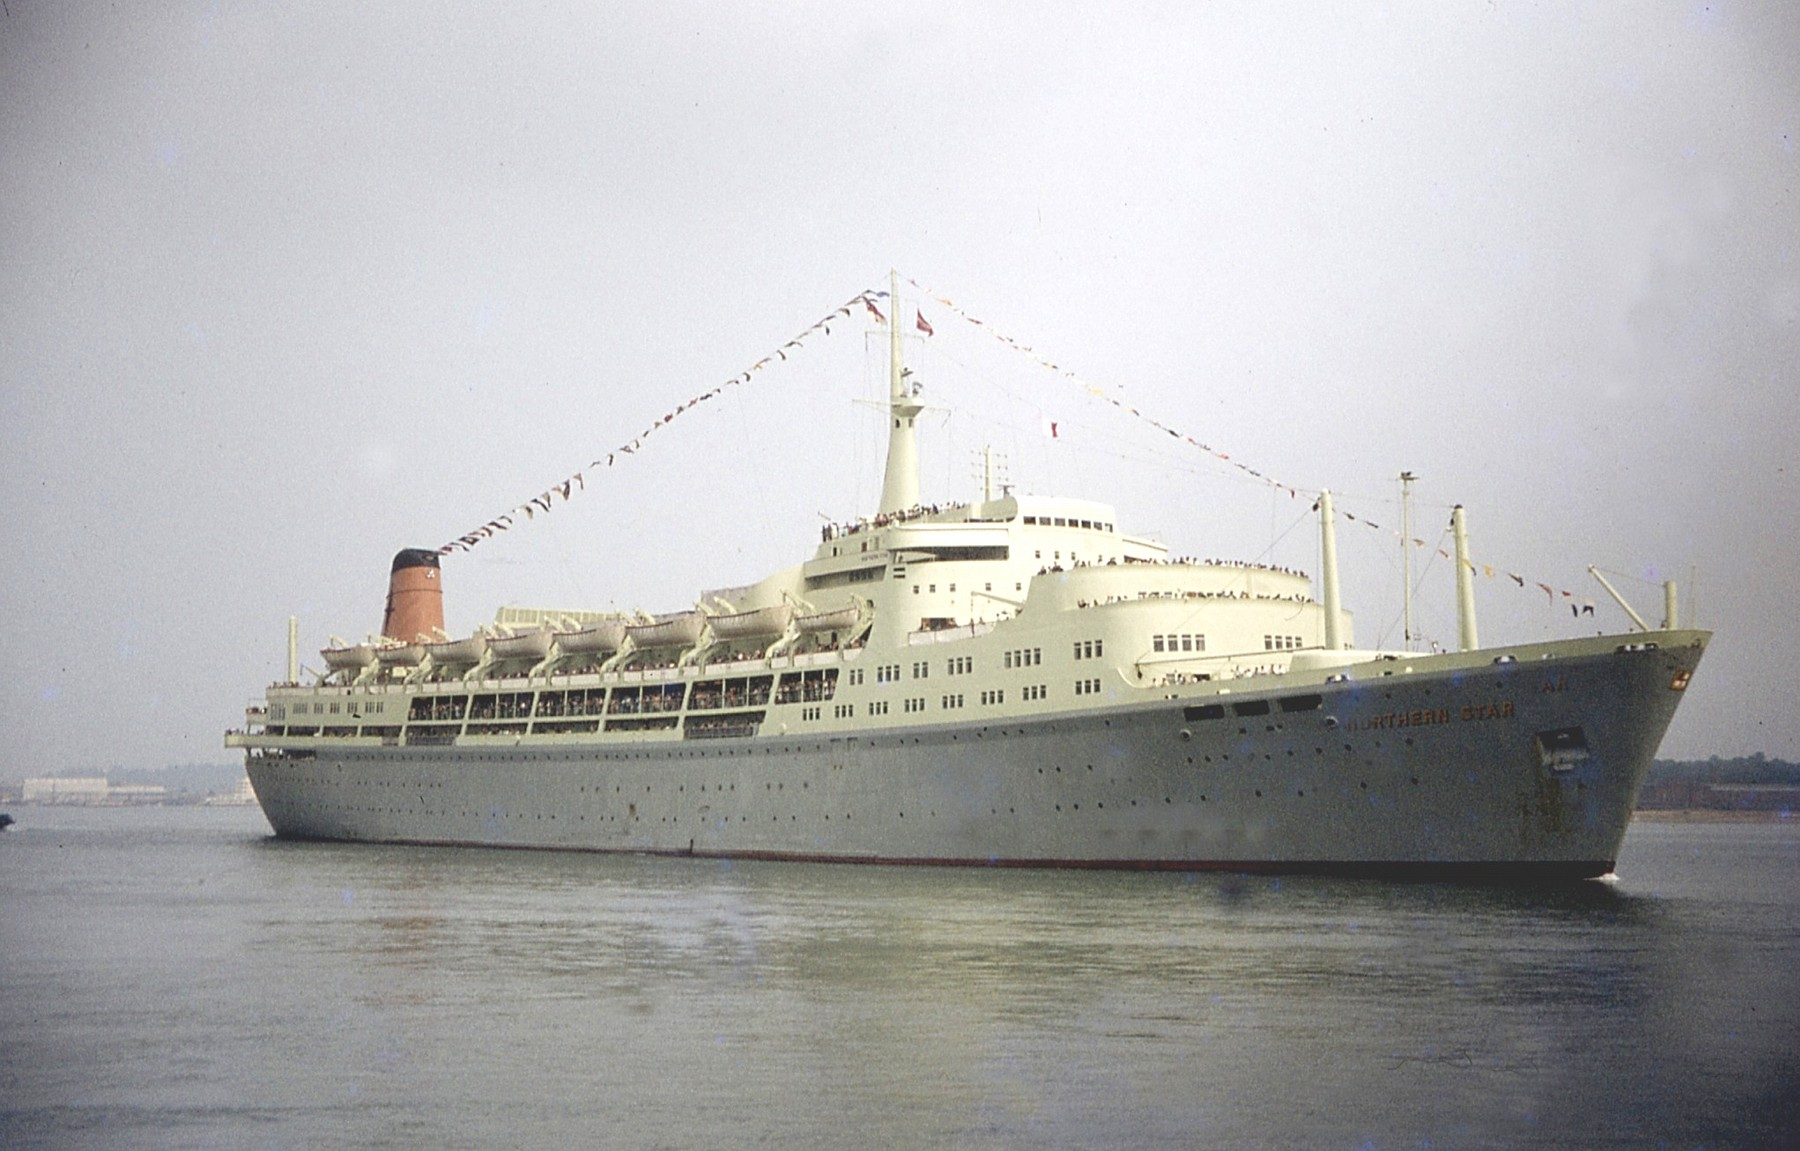 Ship Photos, Container ships, tankers, cruise ships, bulkers, tugs etc